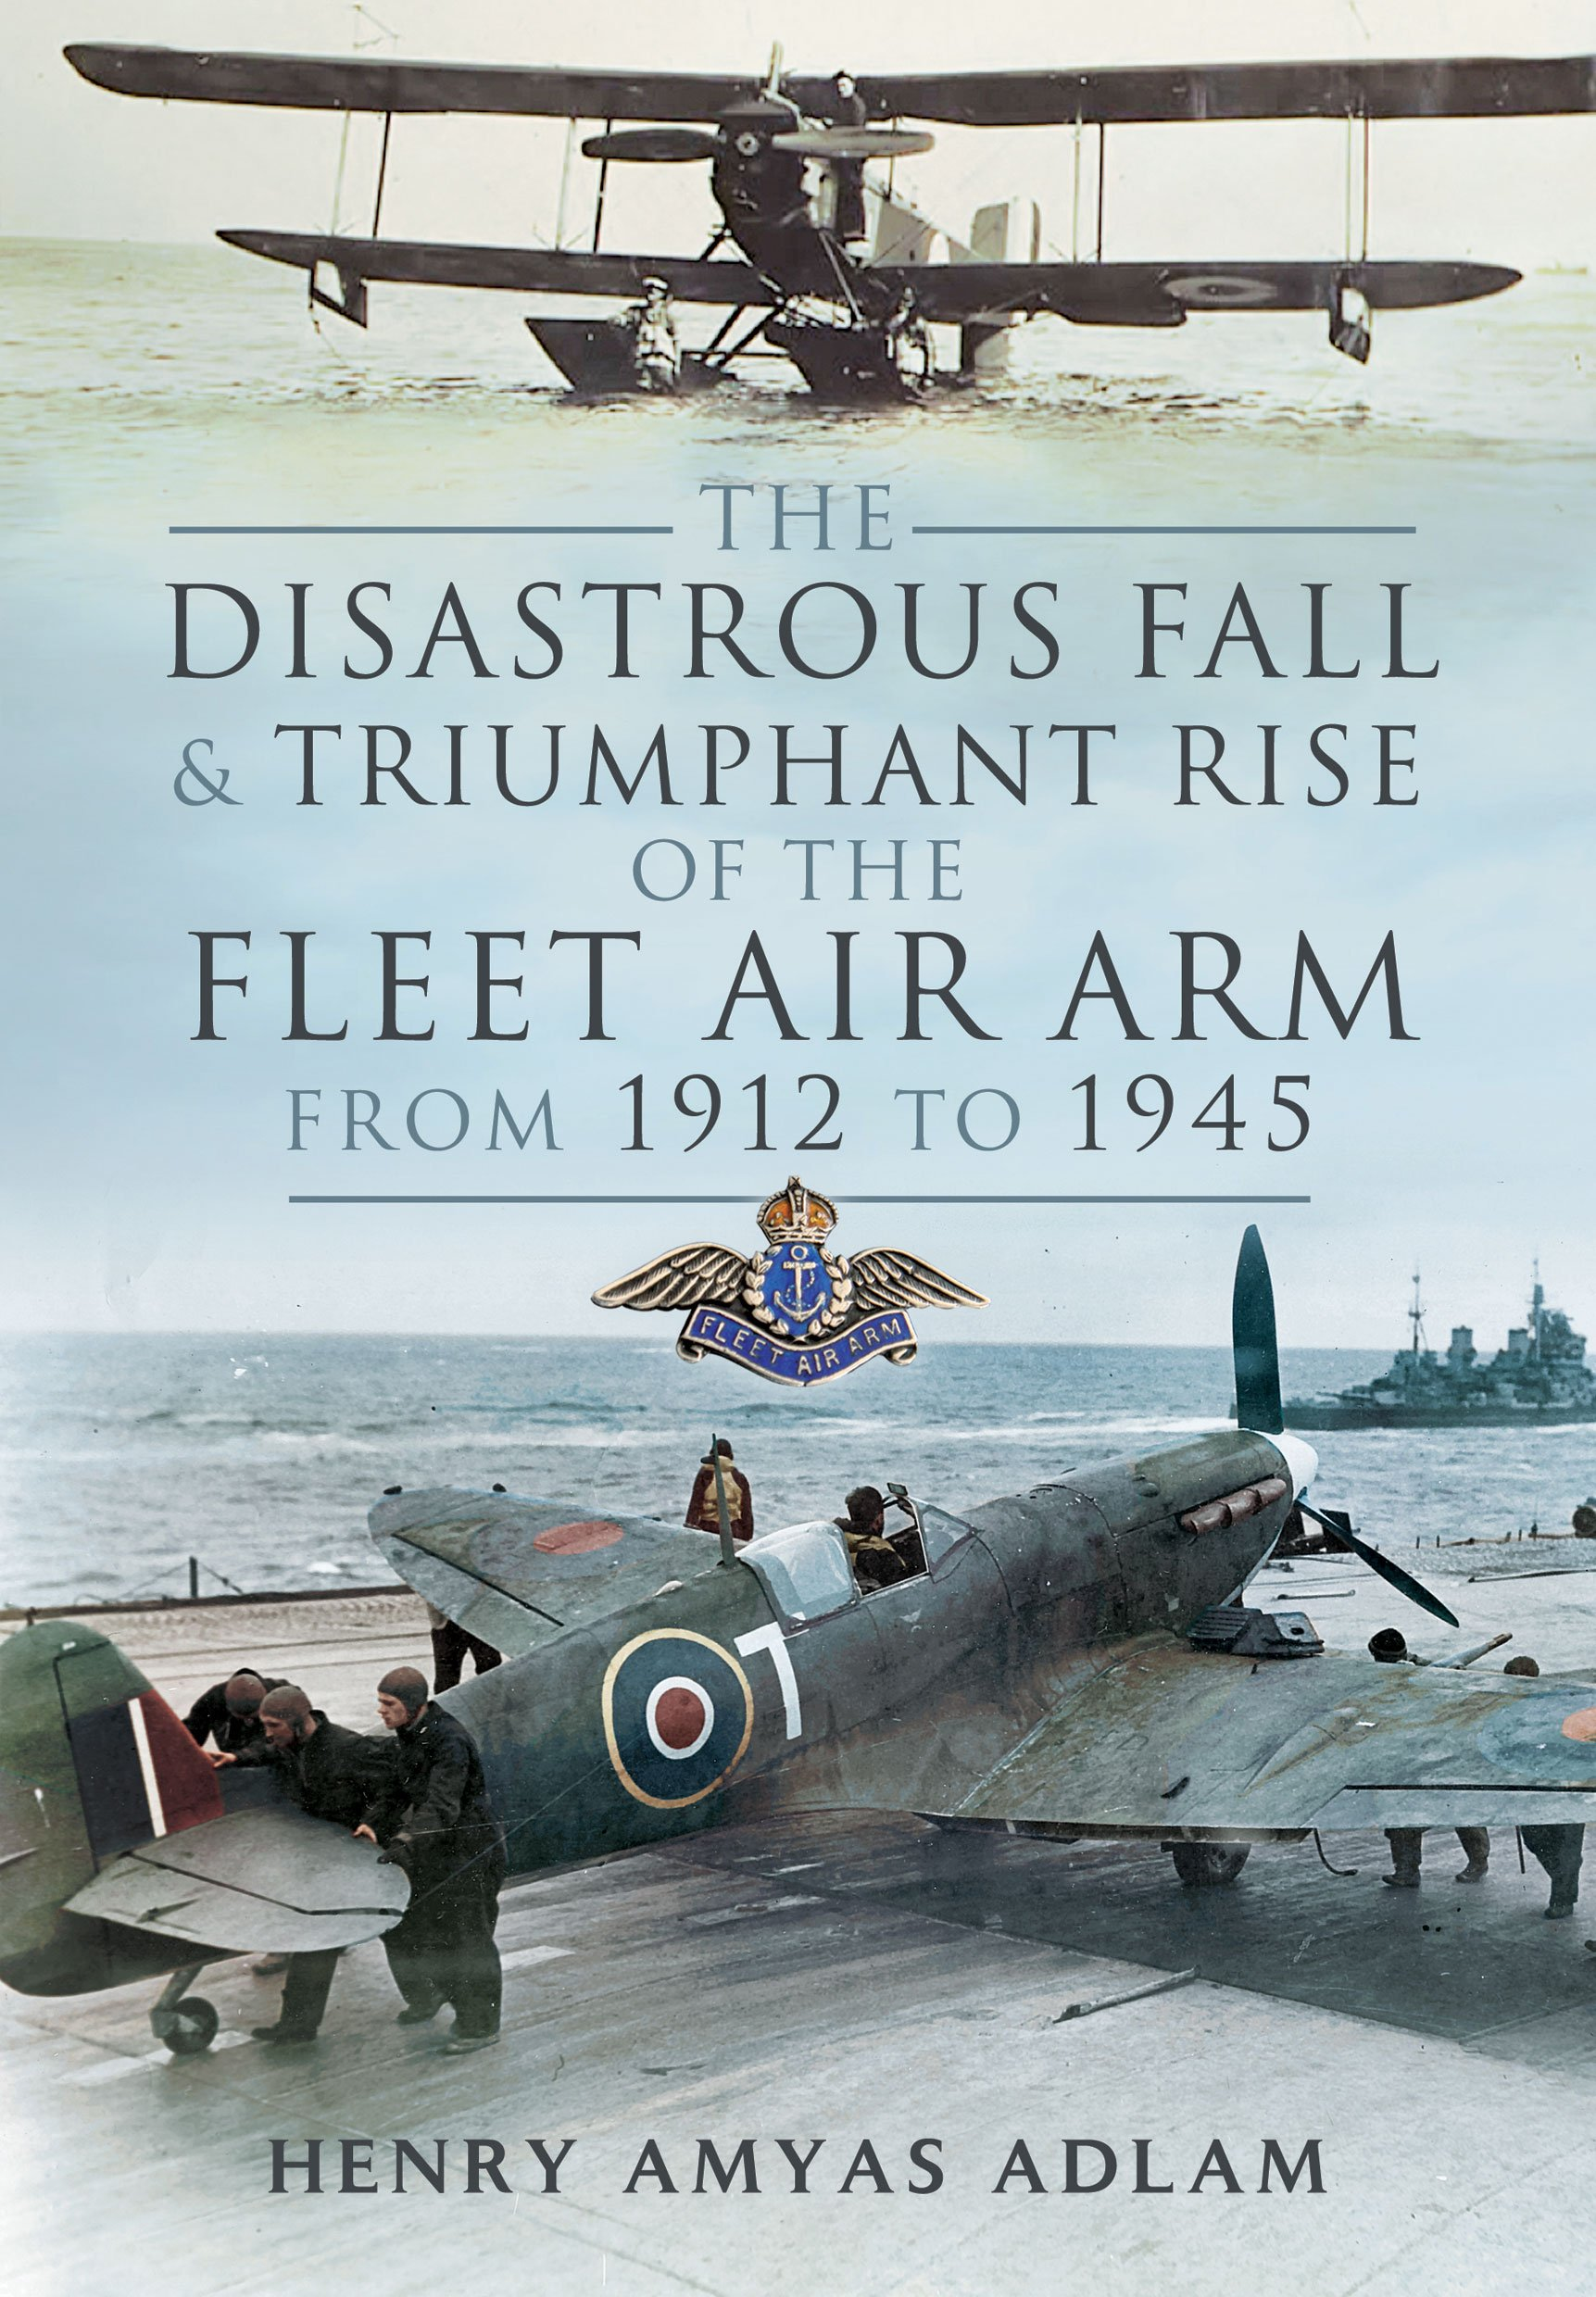 Download The Disastrous Fall and Triumphant Rise of the Fleet Air Arm from 1912 to 1945 pdf